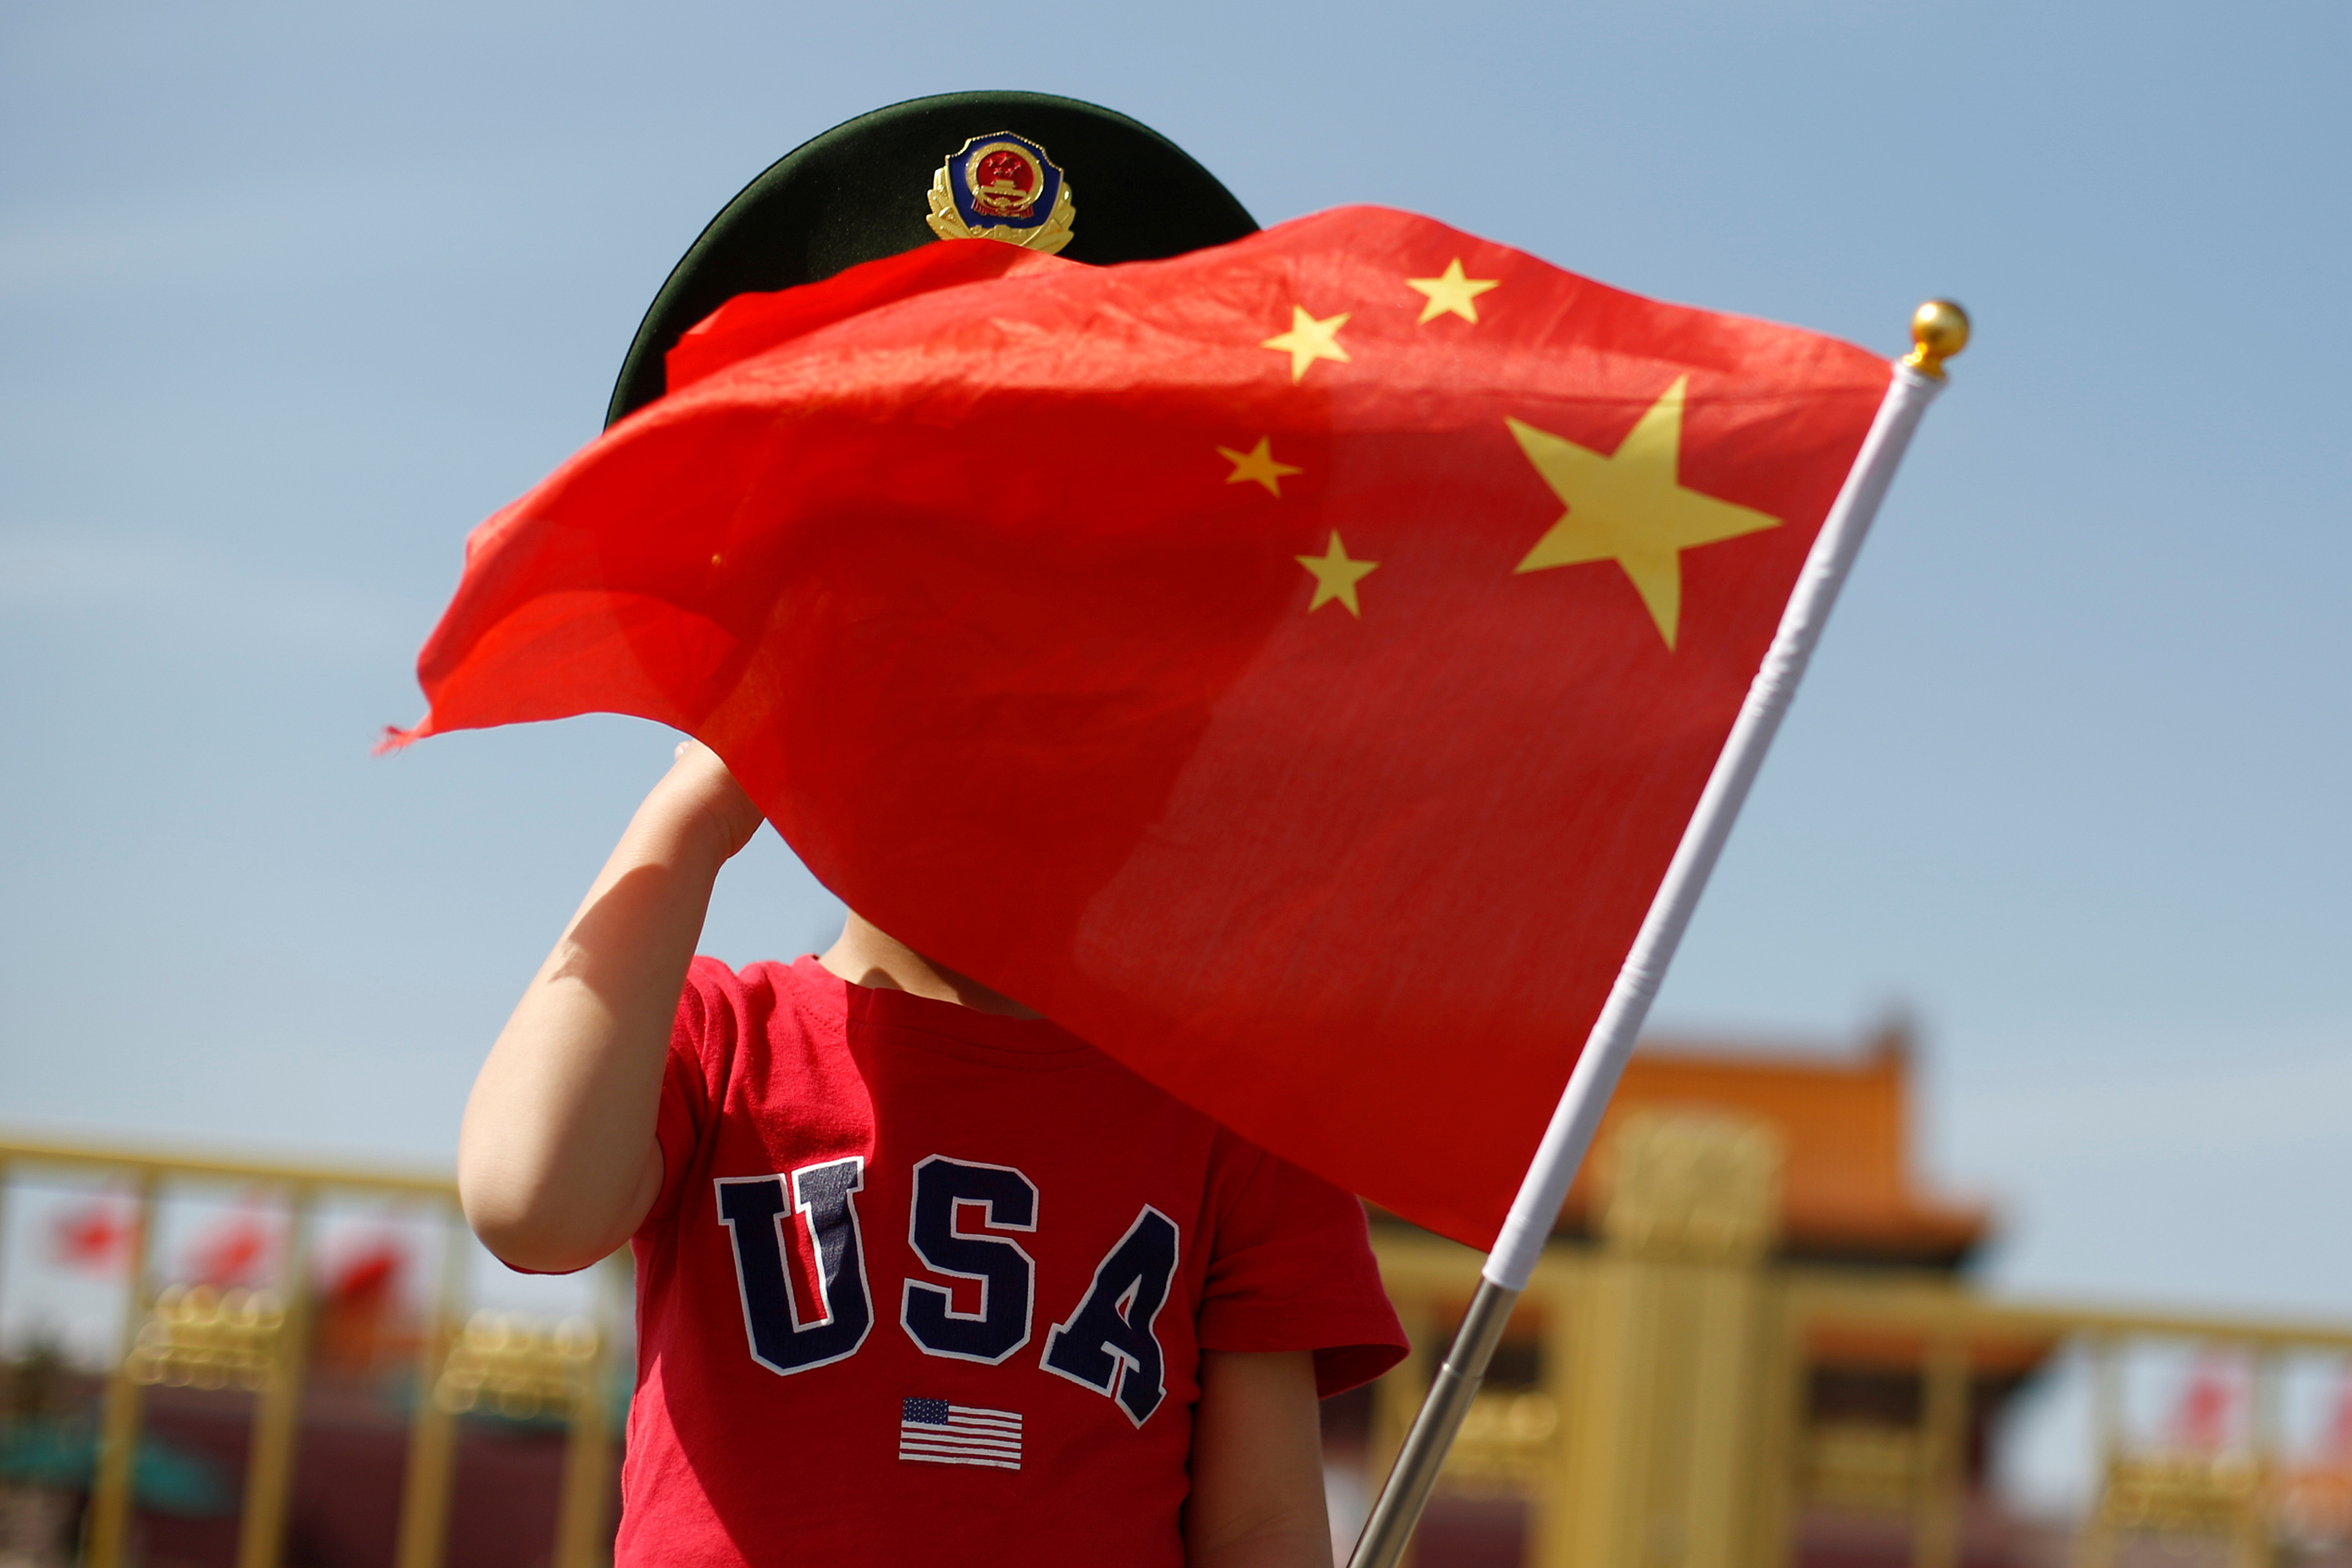 A boy wearing an U.S. t-shirt waves a Chinese national flag in Tiananmen Square in Beijing